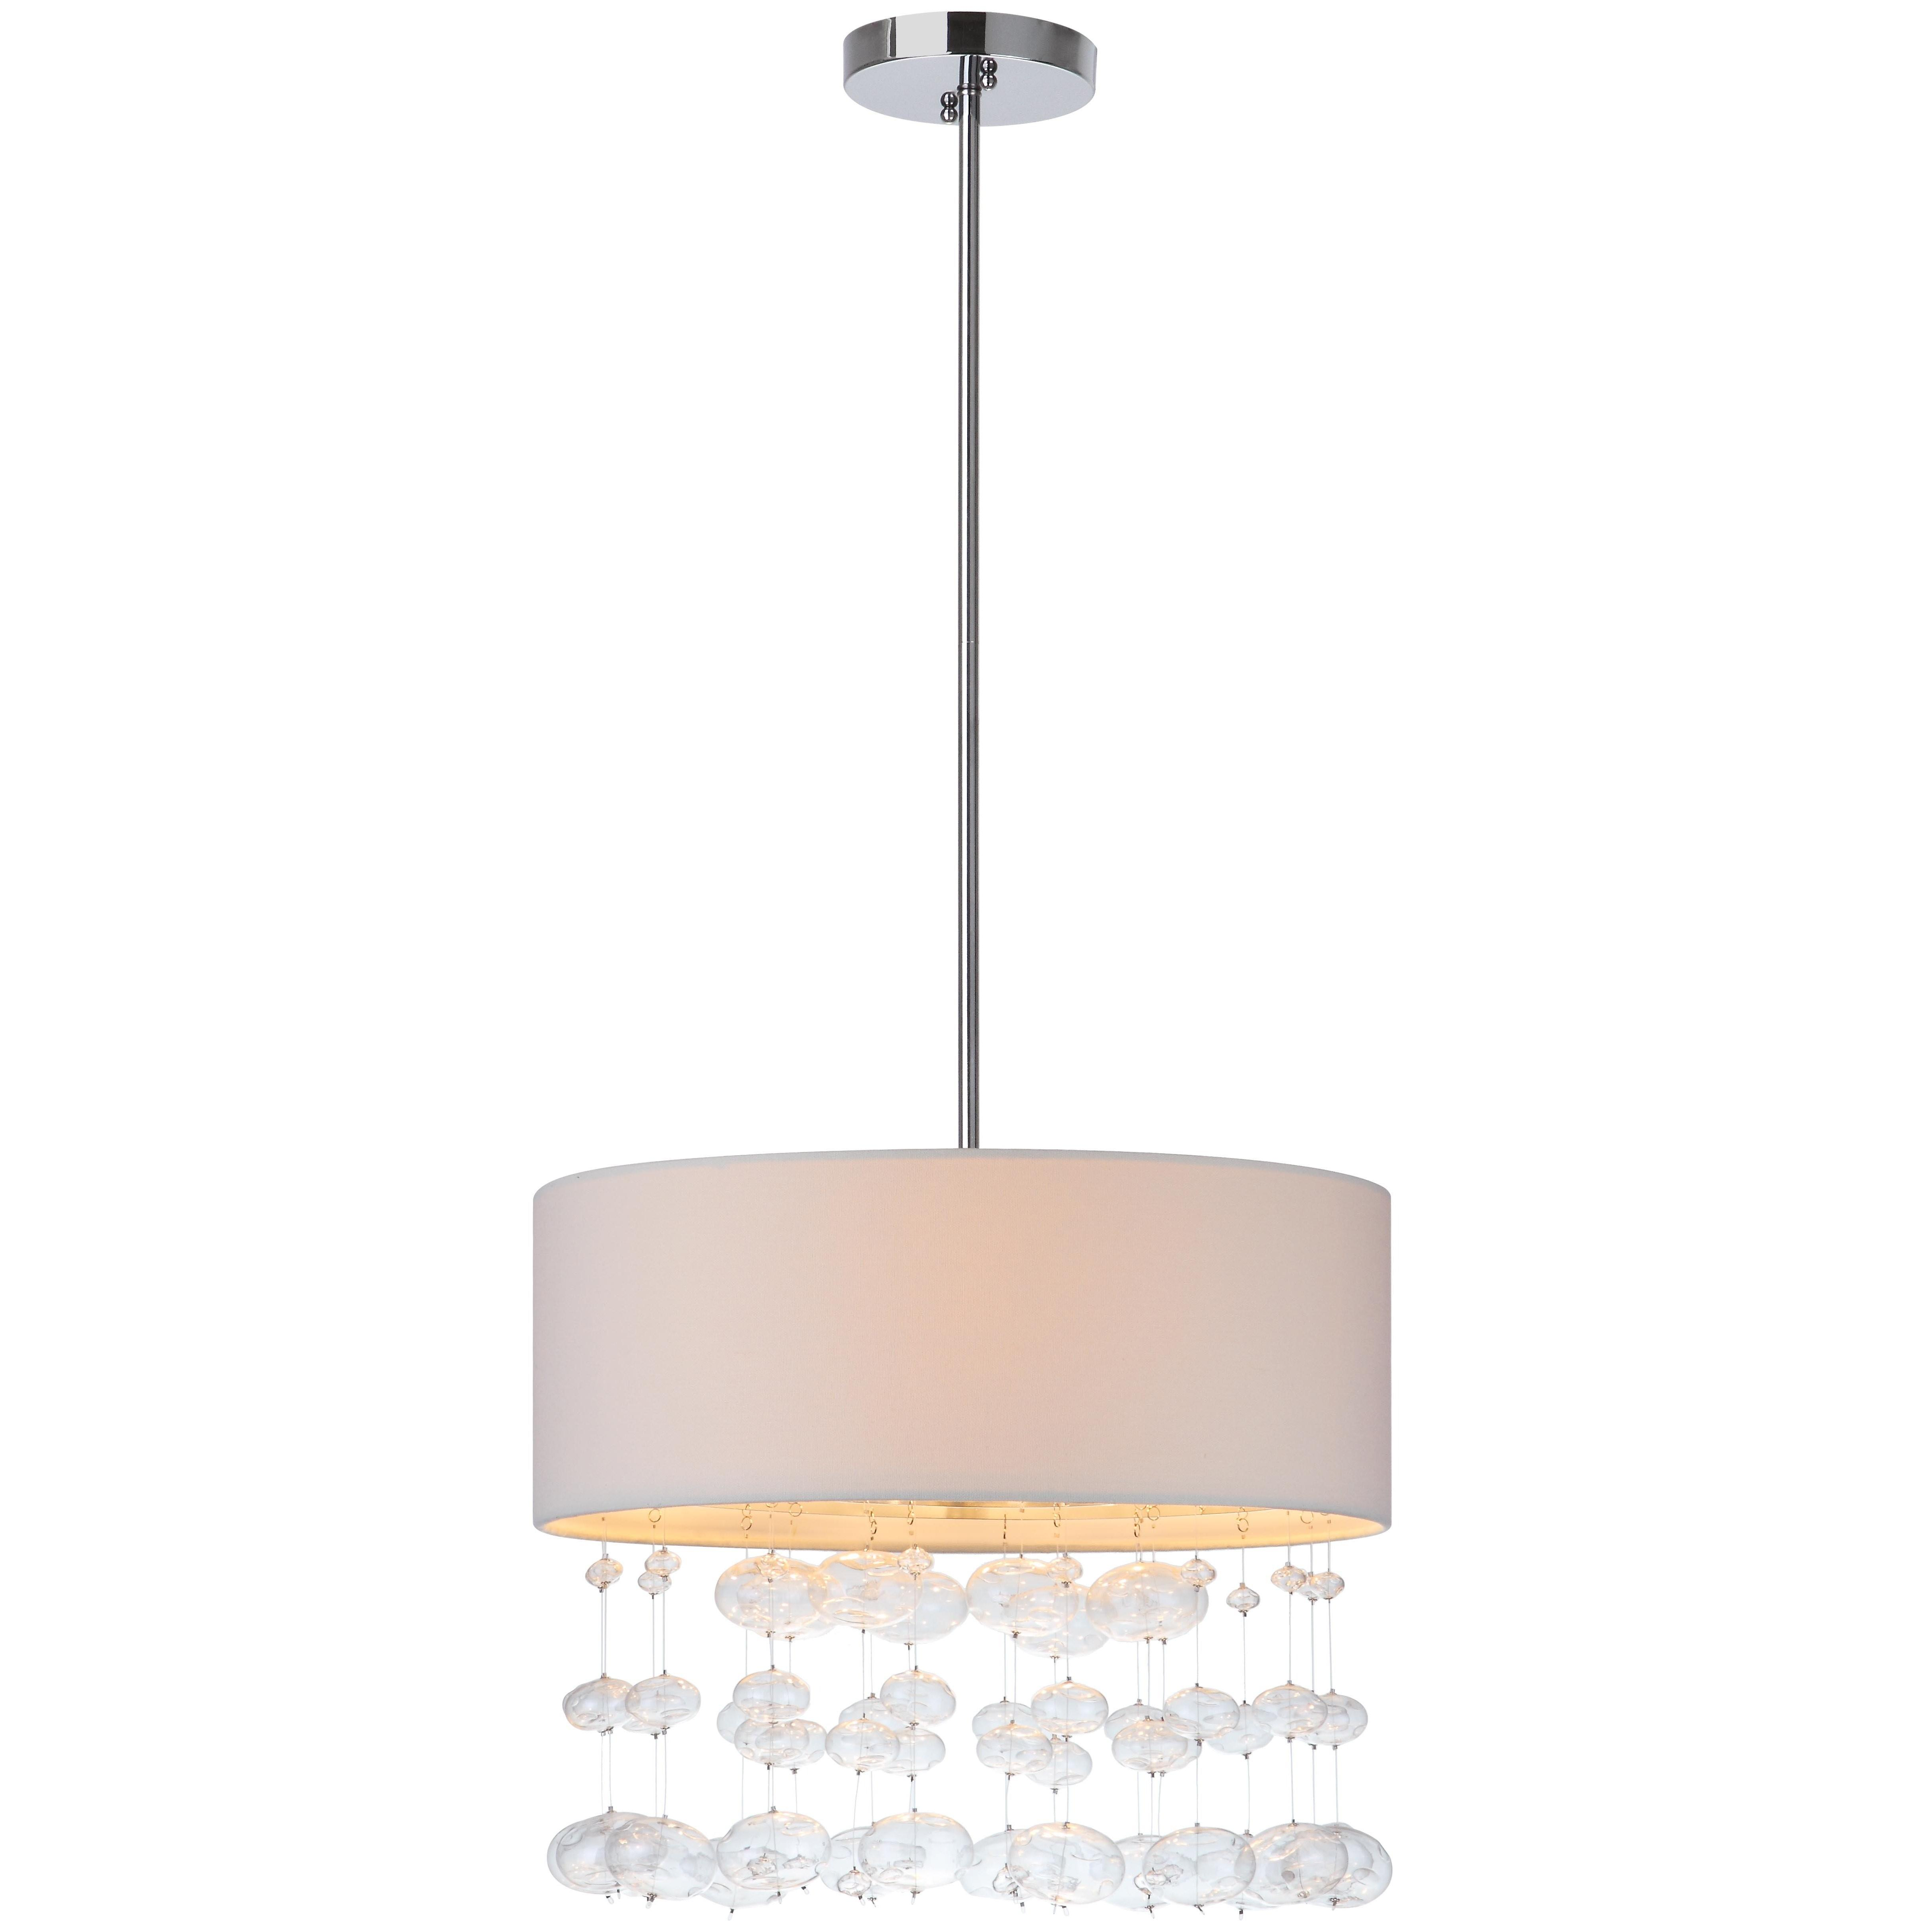 Safavieh Debutante Light Drum Pendant